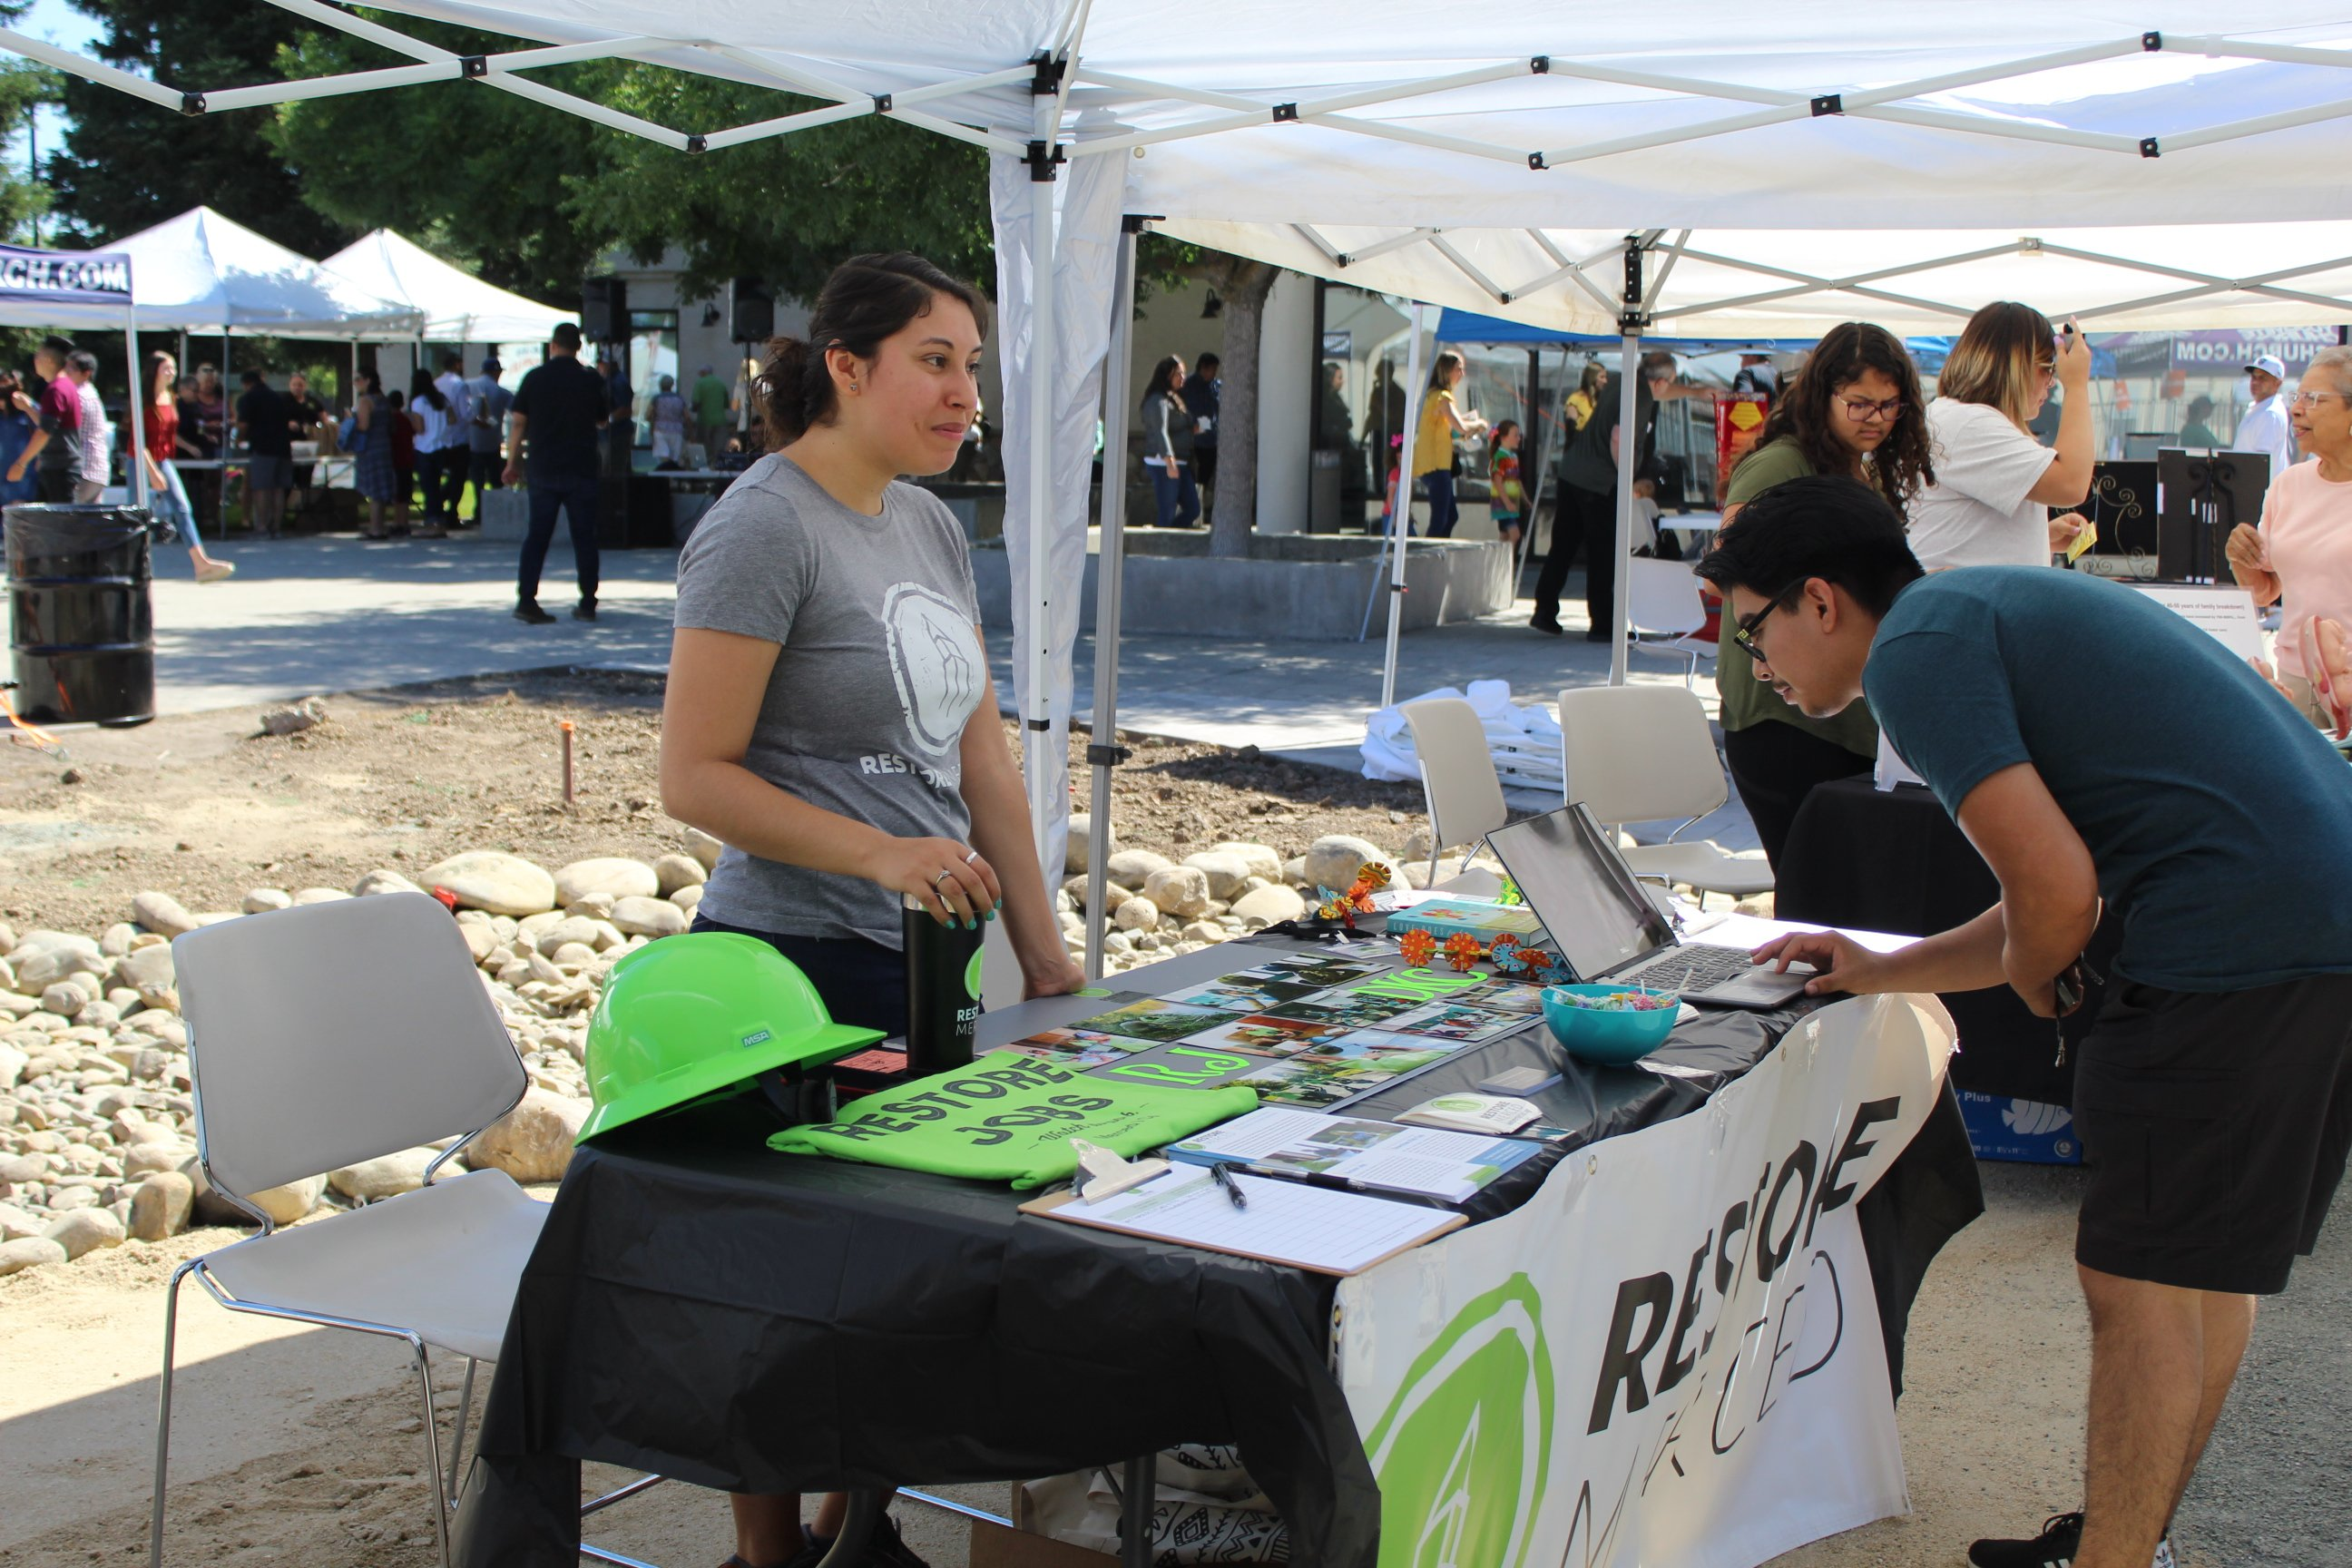 Be the Change' at Yosemite Church promotes outreach — Merced County